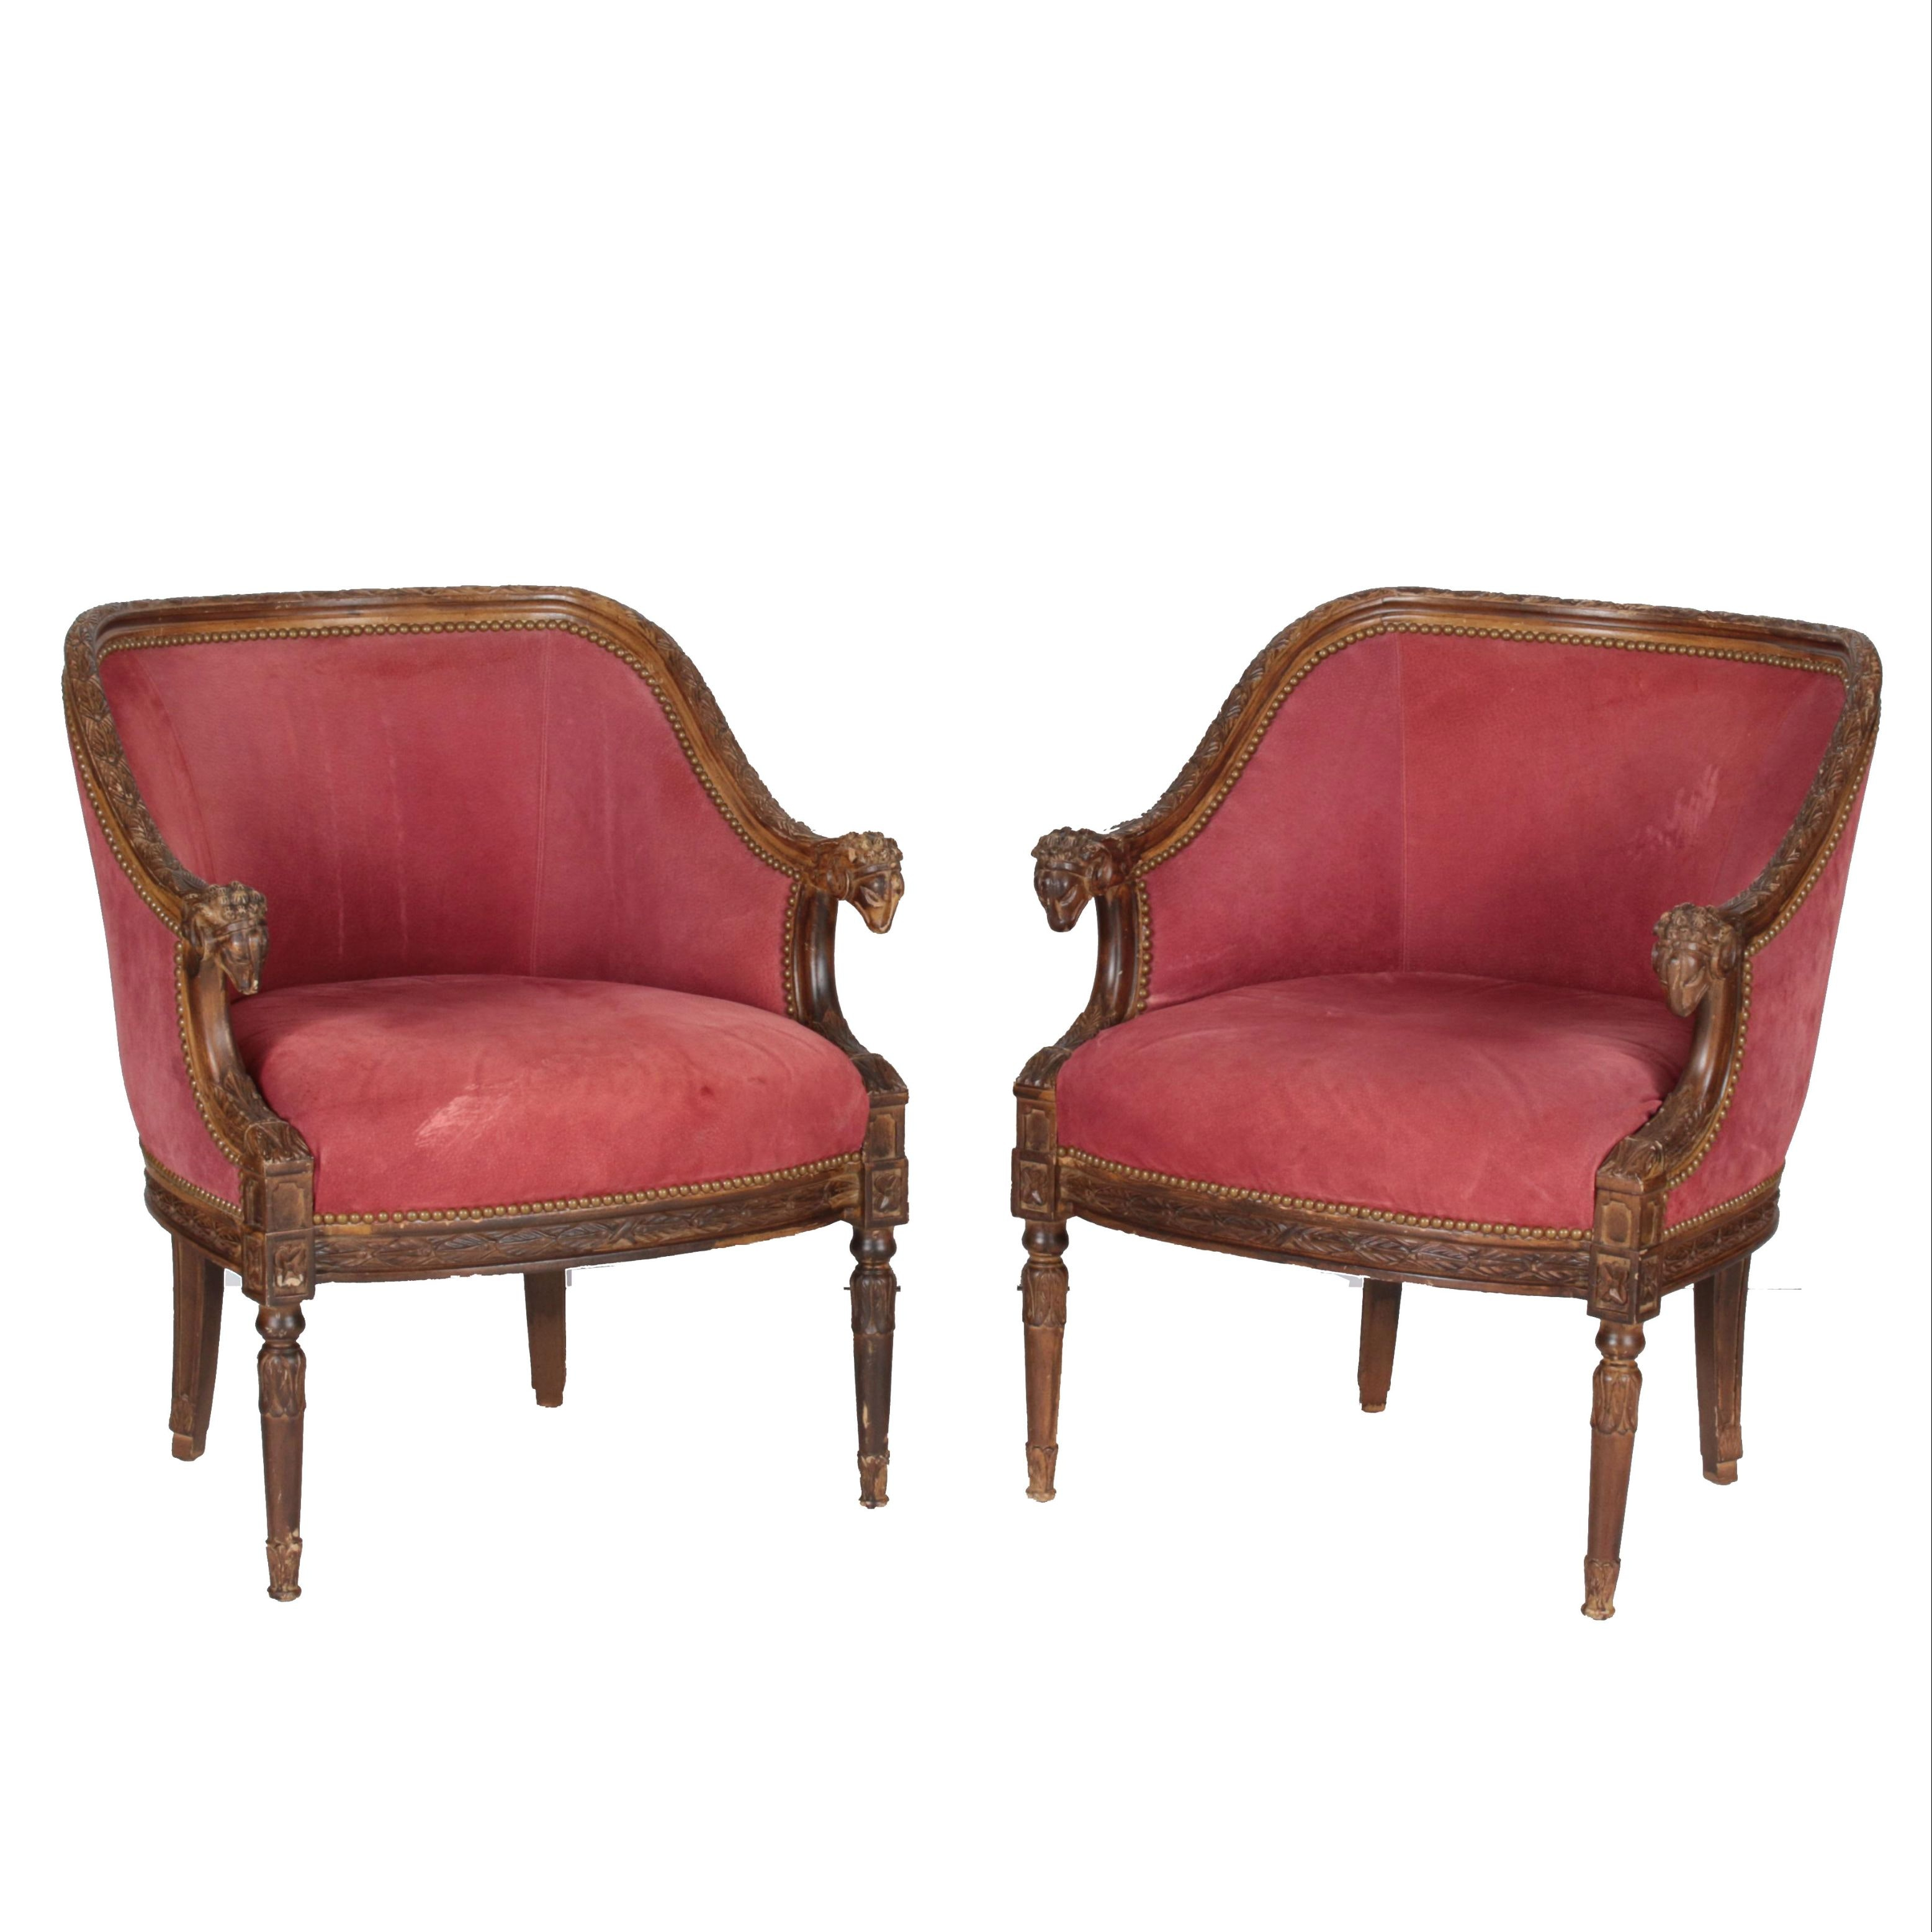 Pair of Vintage Italian Neoclassical Style Armchairs